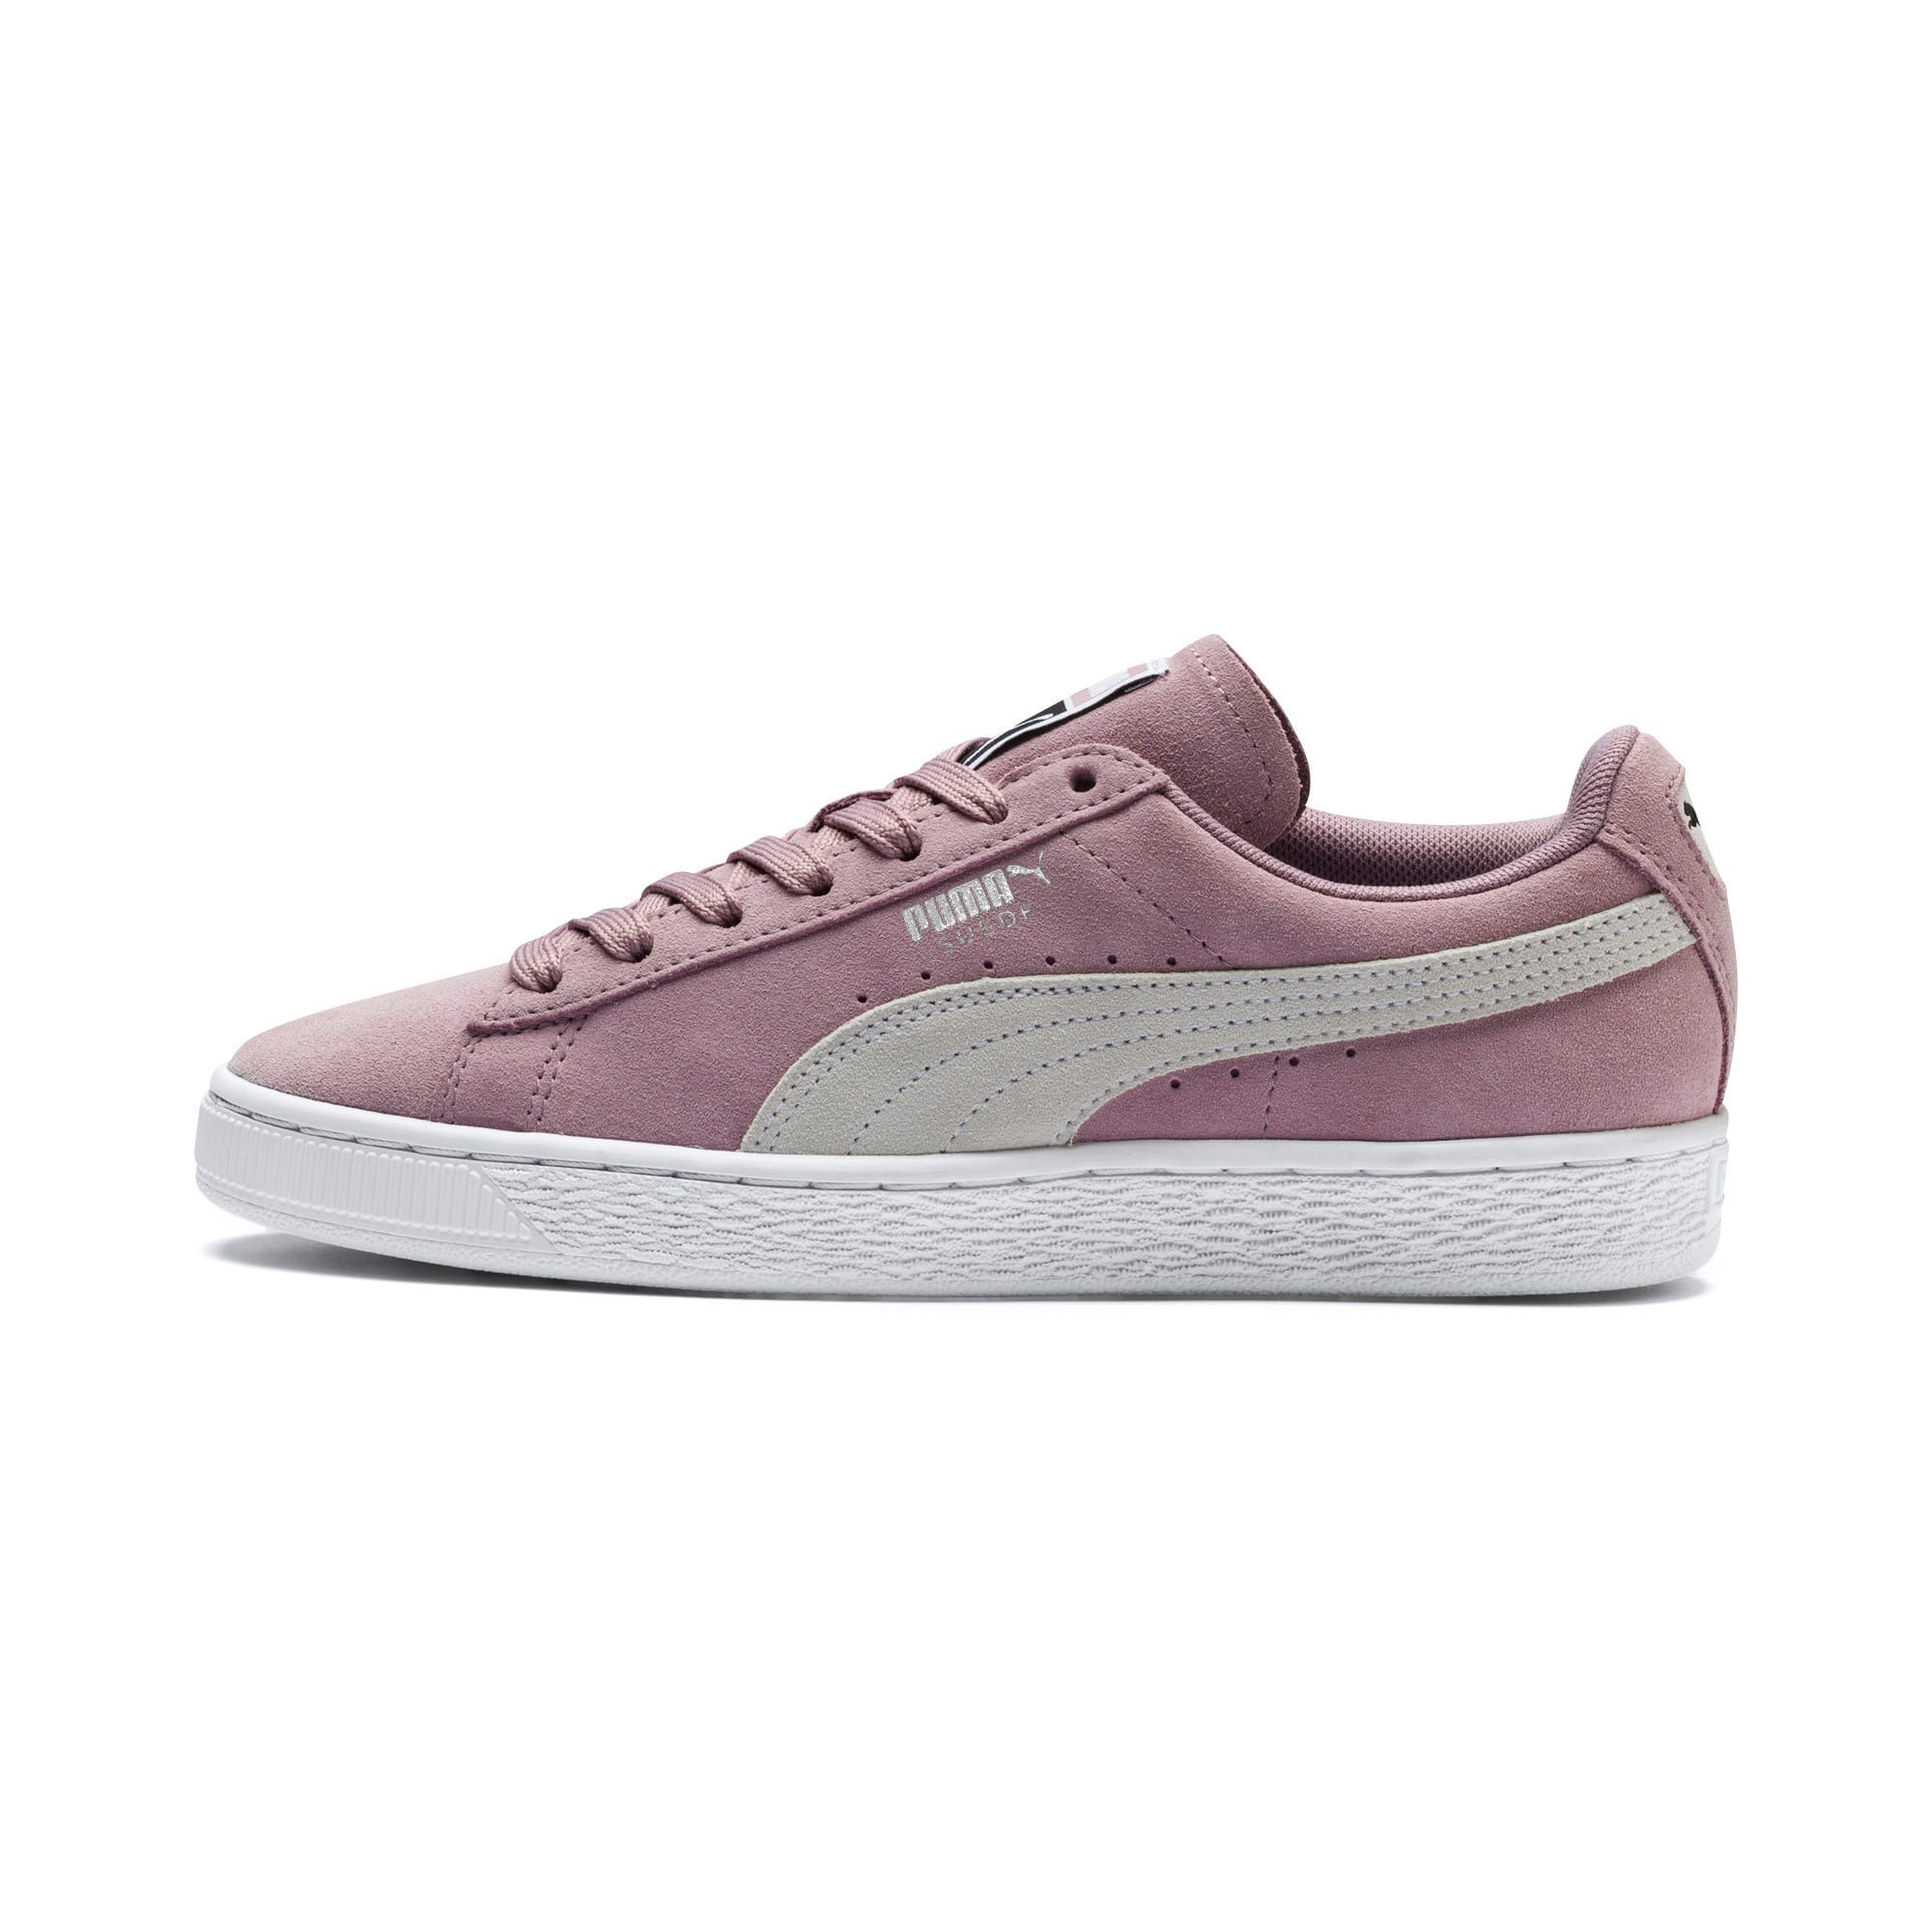 Thumbnail 1 of Suede Classic Women's Sneakers, Elderberry-Puma White, medium